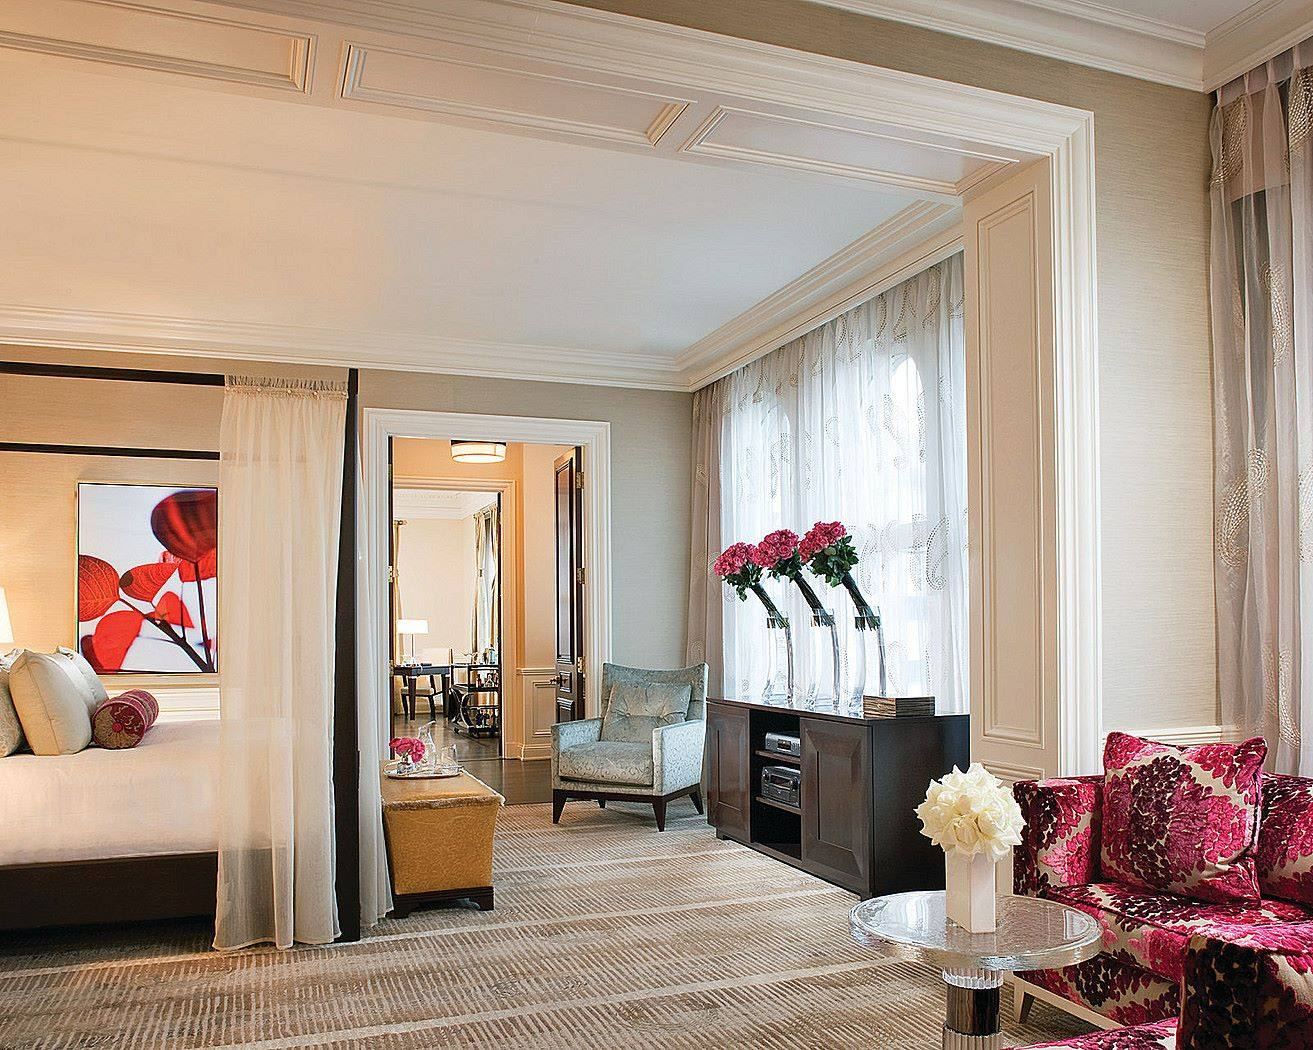 Wilshire Presidential Suite at the Beverly Wilshire Hotel